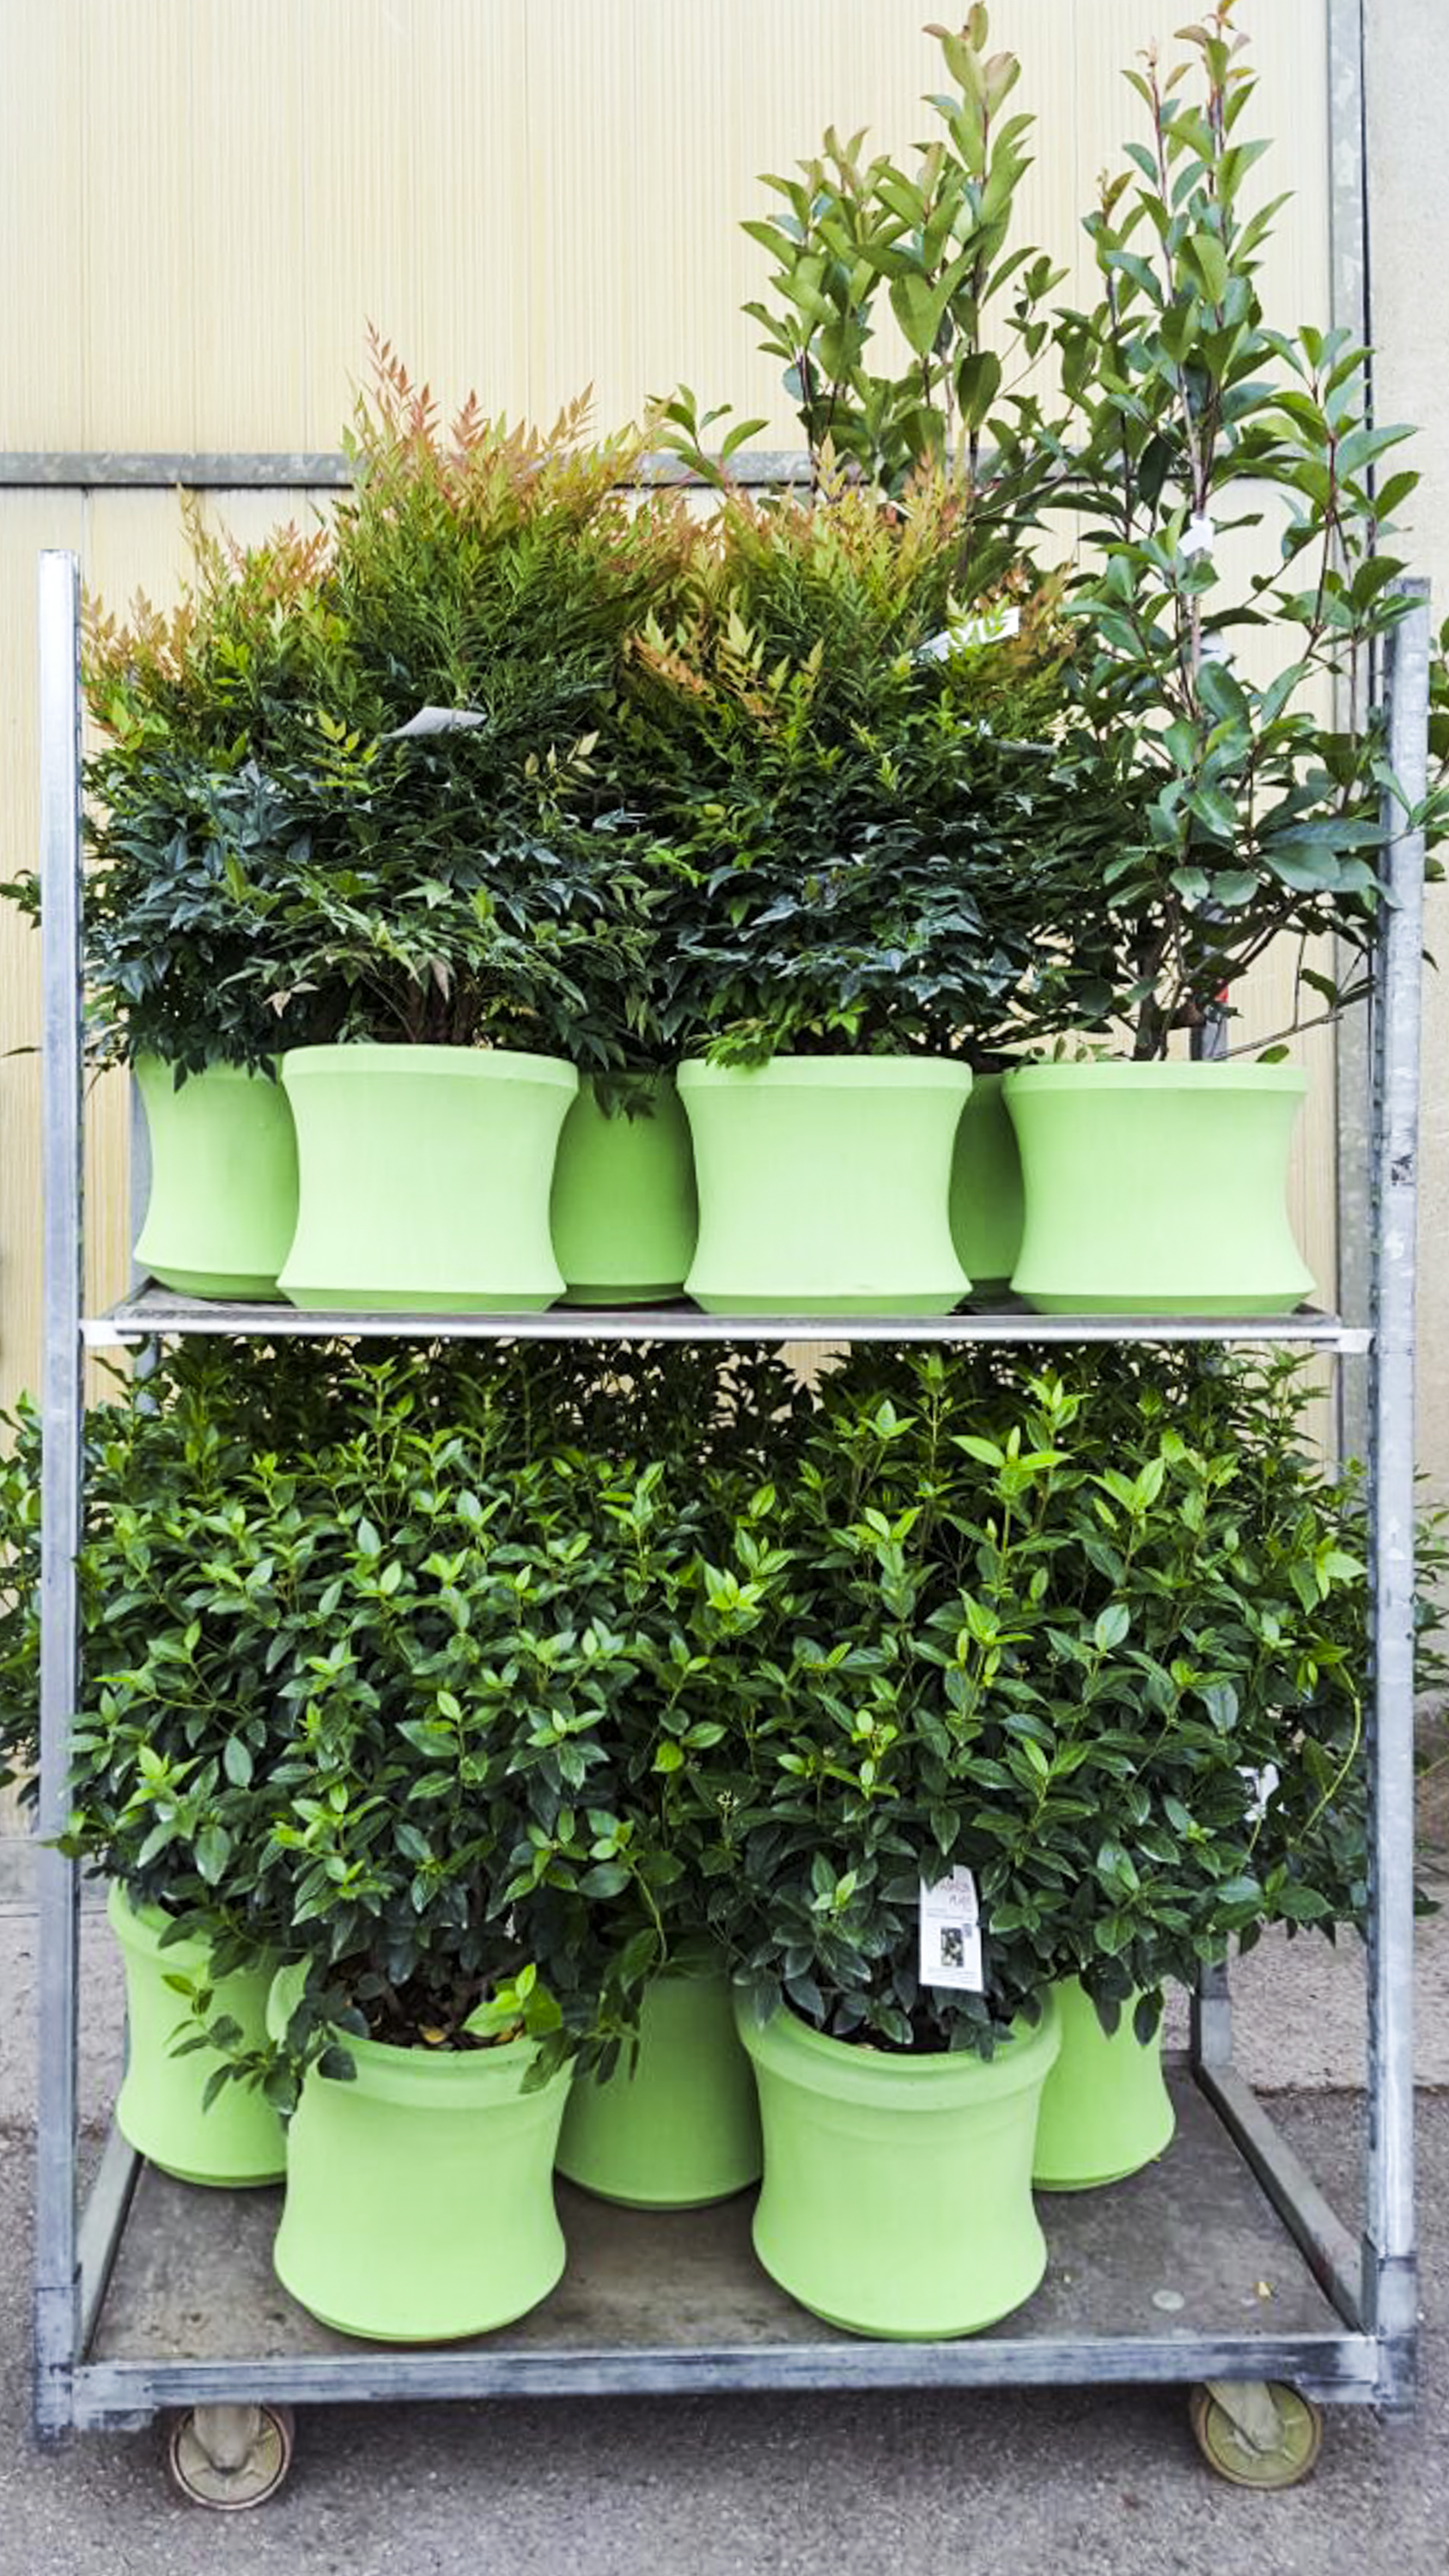 Carrello cc Fashion Plant (1)